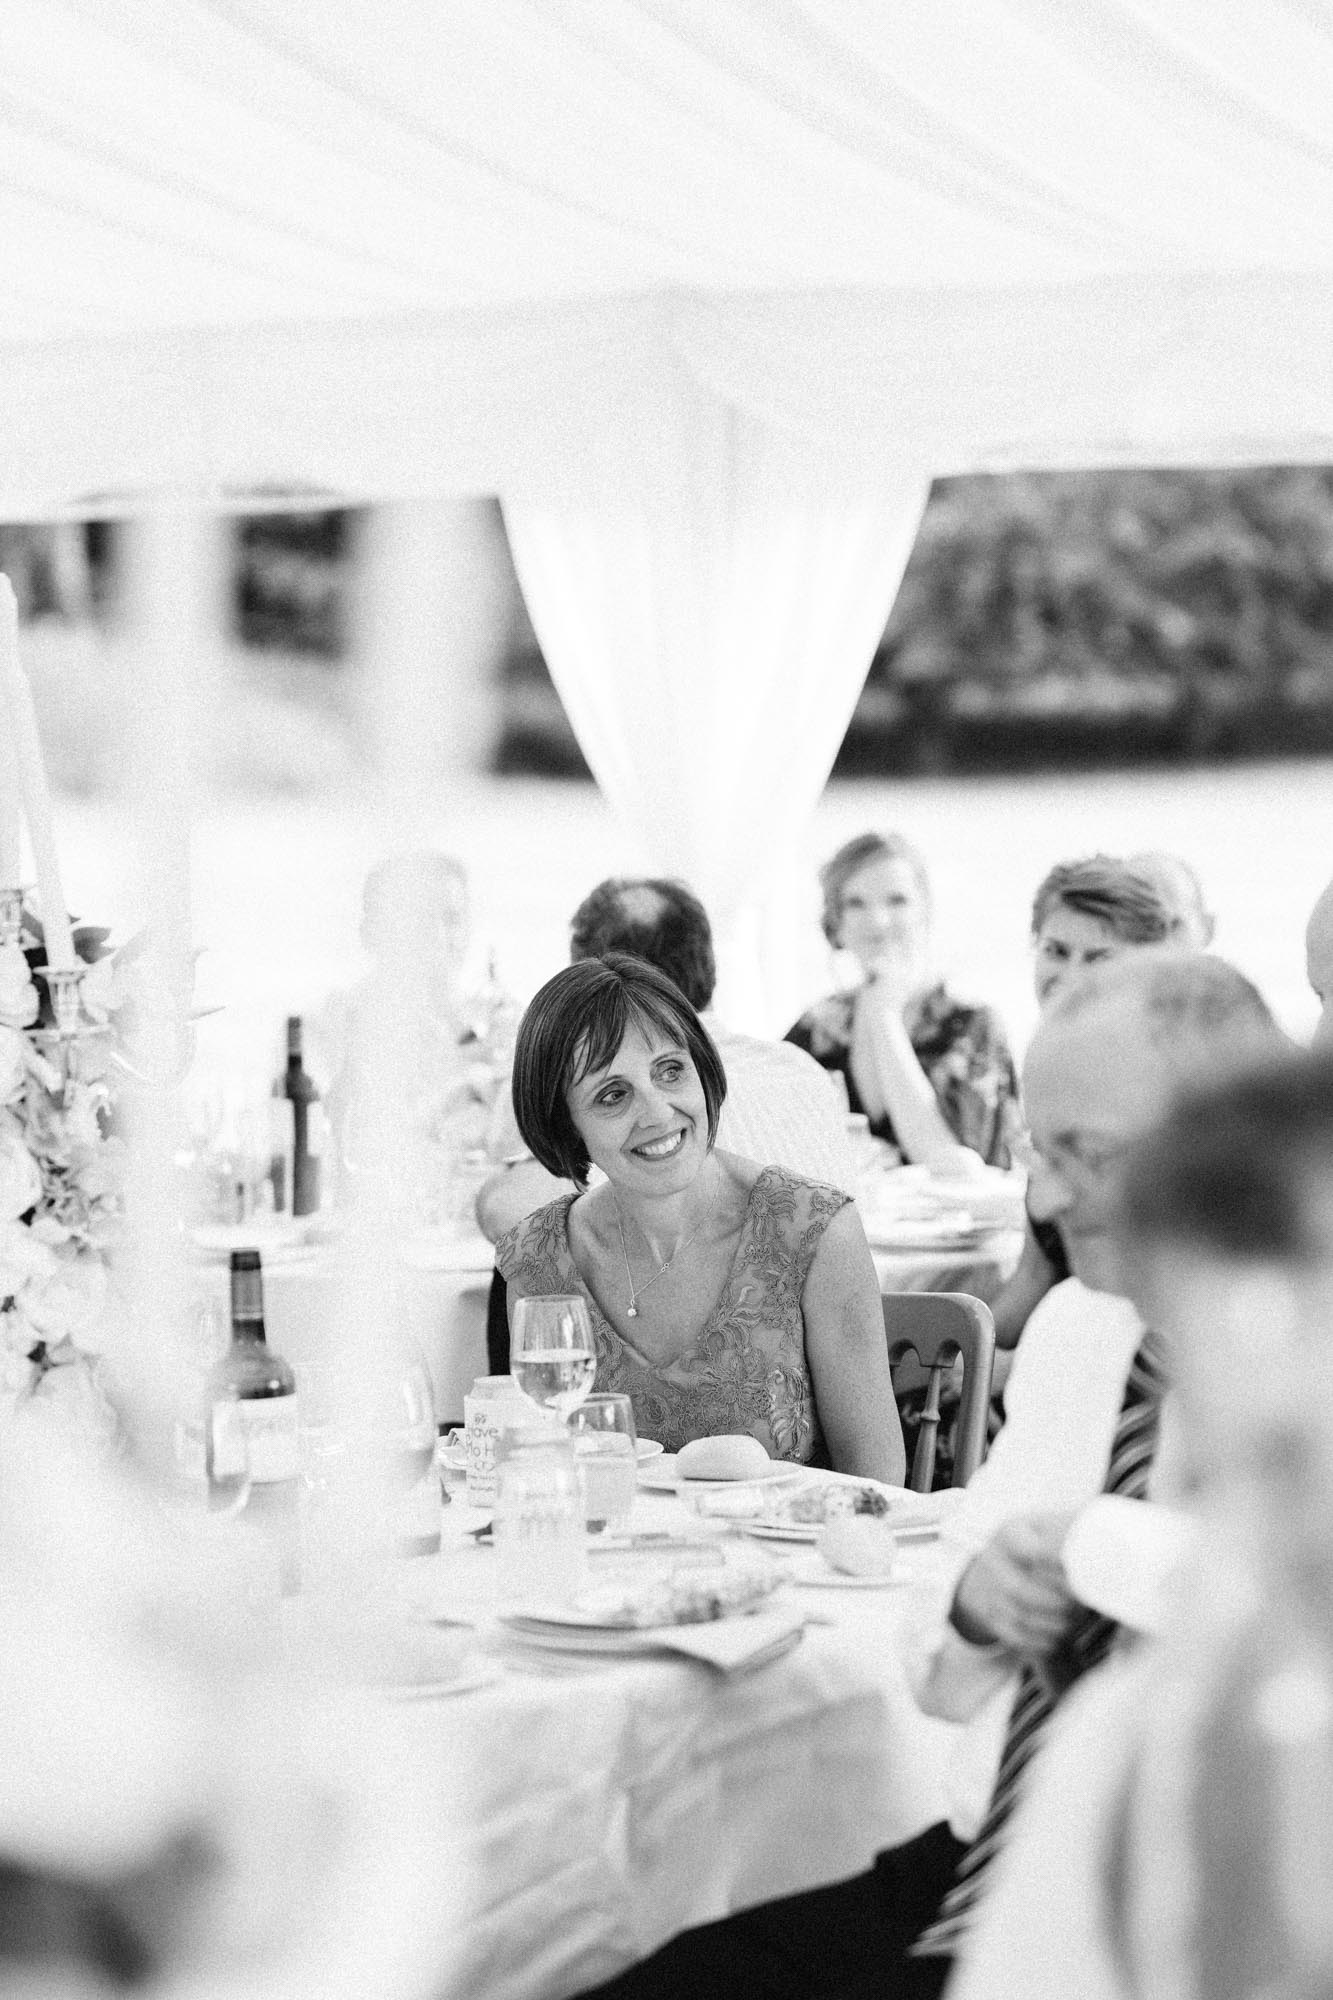 Mother of the groom smiling during speeches in black and white photograph